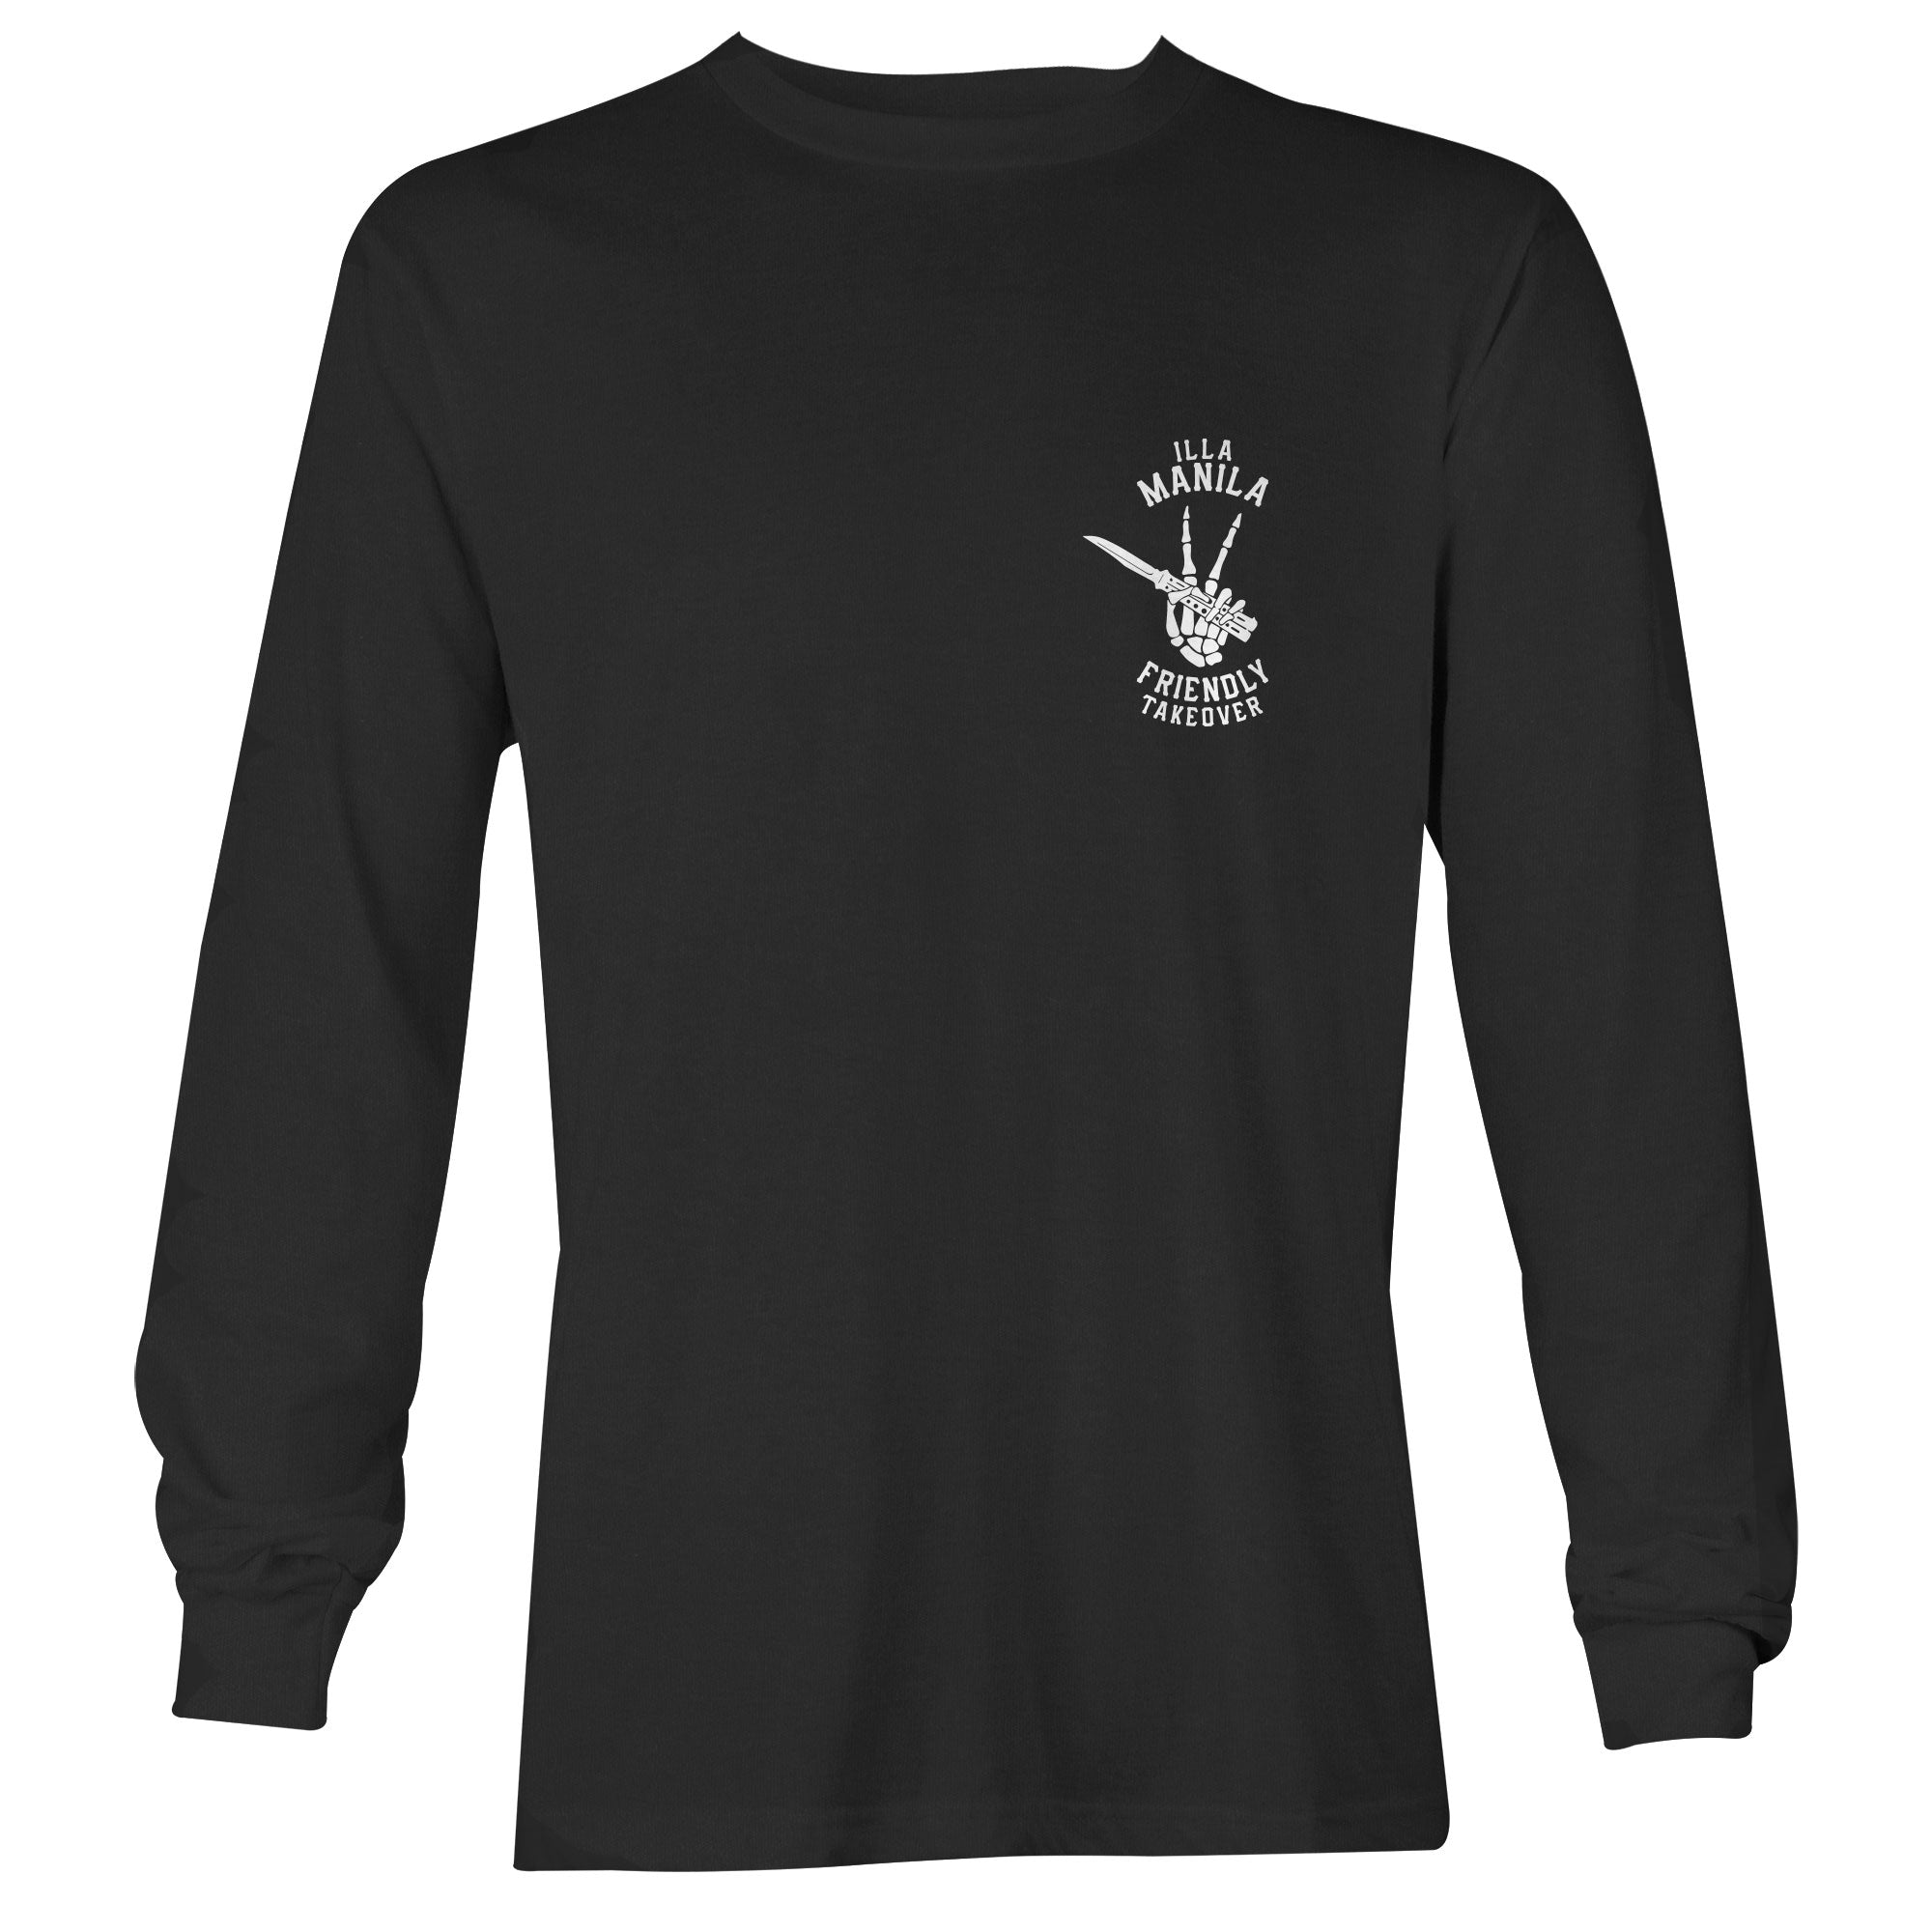 Friendly Takeover Long Sleeve T-shirt - Black